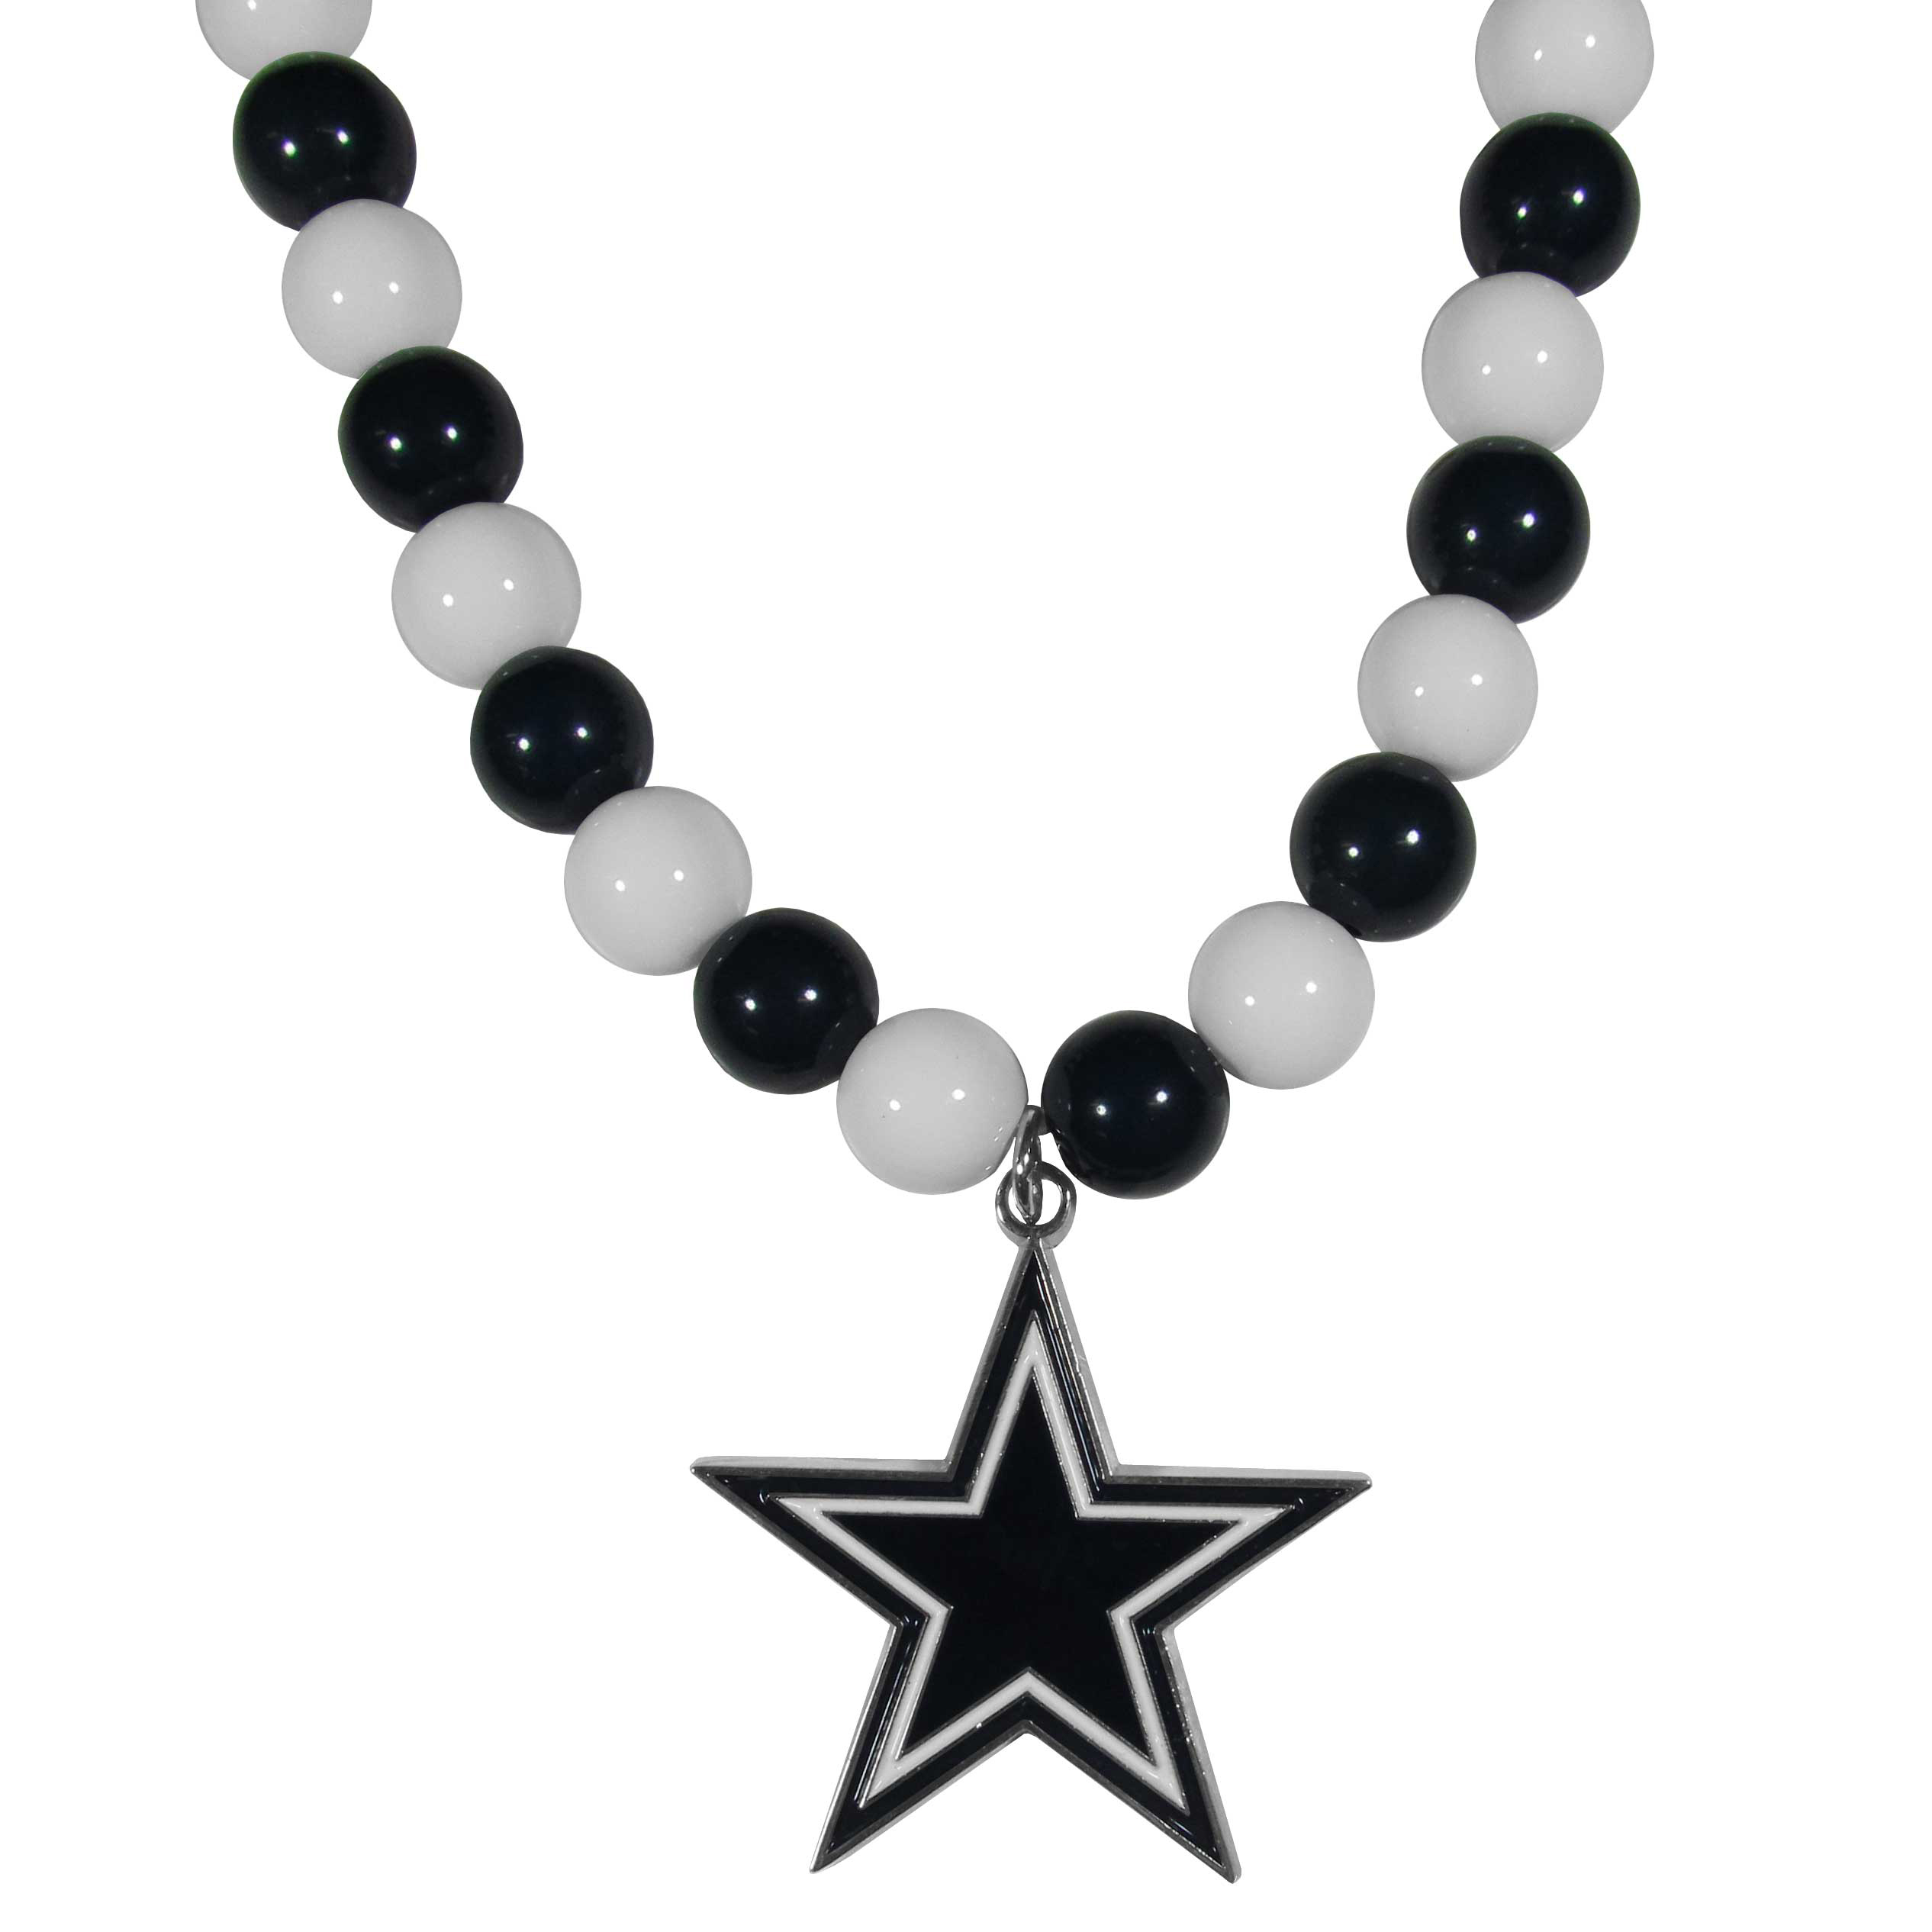 Dallas Cowboys Fan Bead Necklace - Make a big statement with our fan bead necklaces! These brightly colored necklace have a 24 inch string of alternating colored beads with an extra large, high-polish Dallas Cowboys pendant.